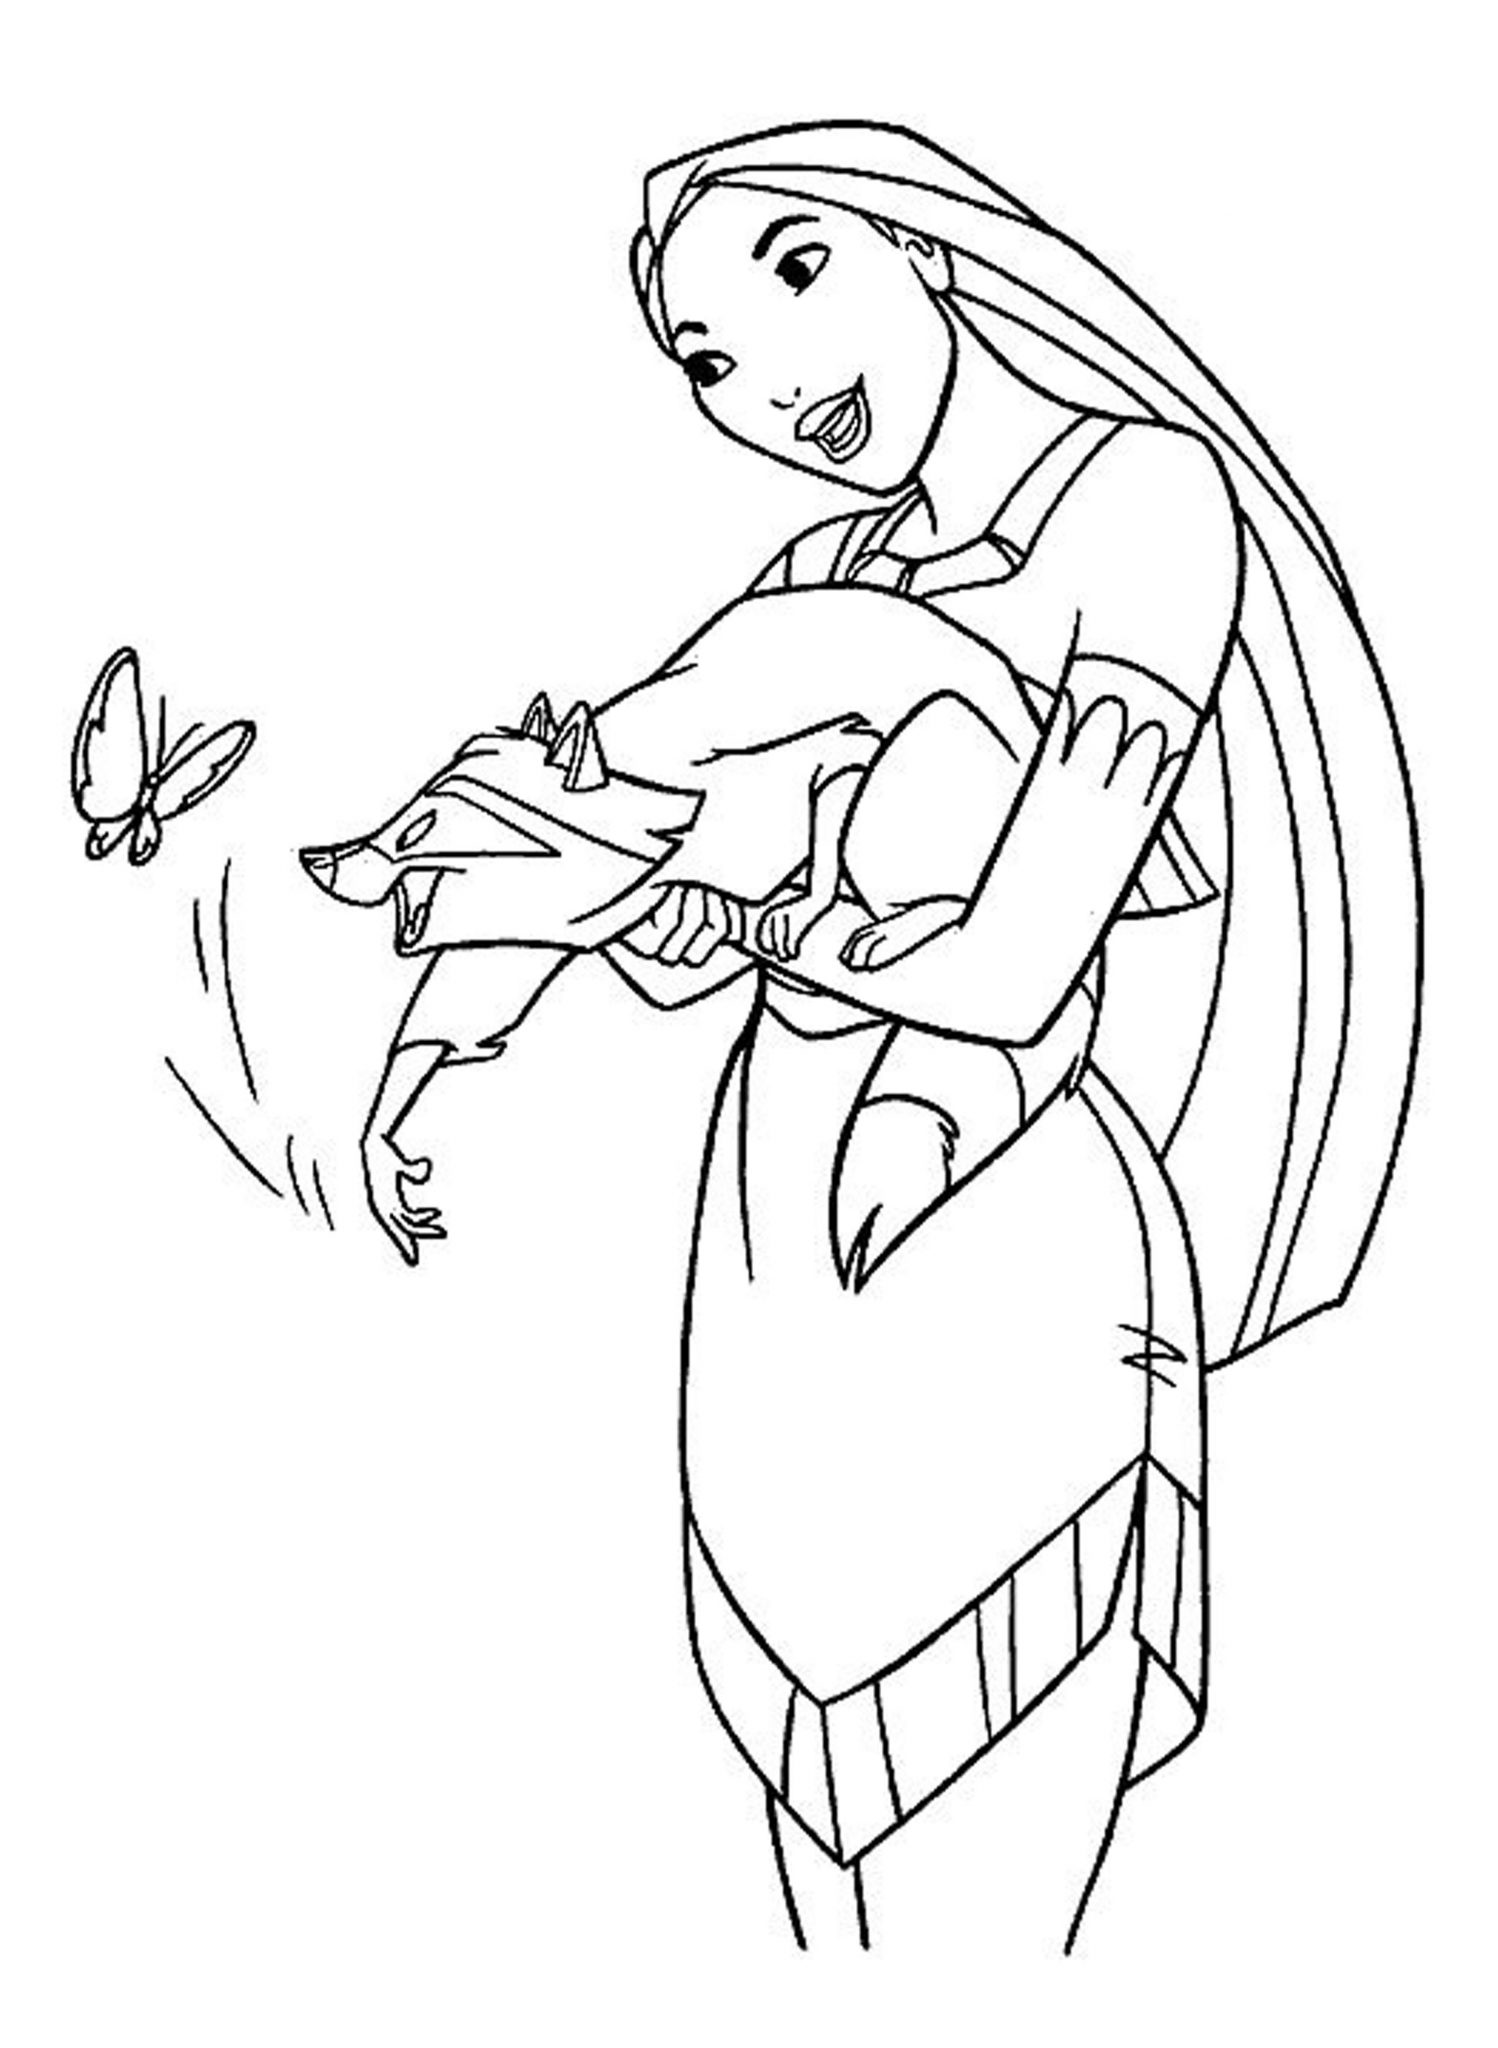 Disney printable easy coloring pages